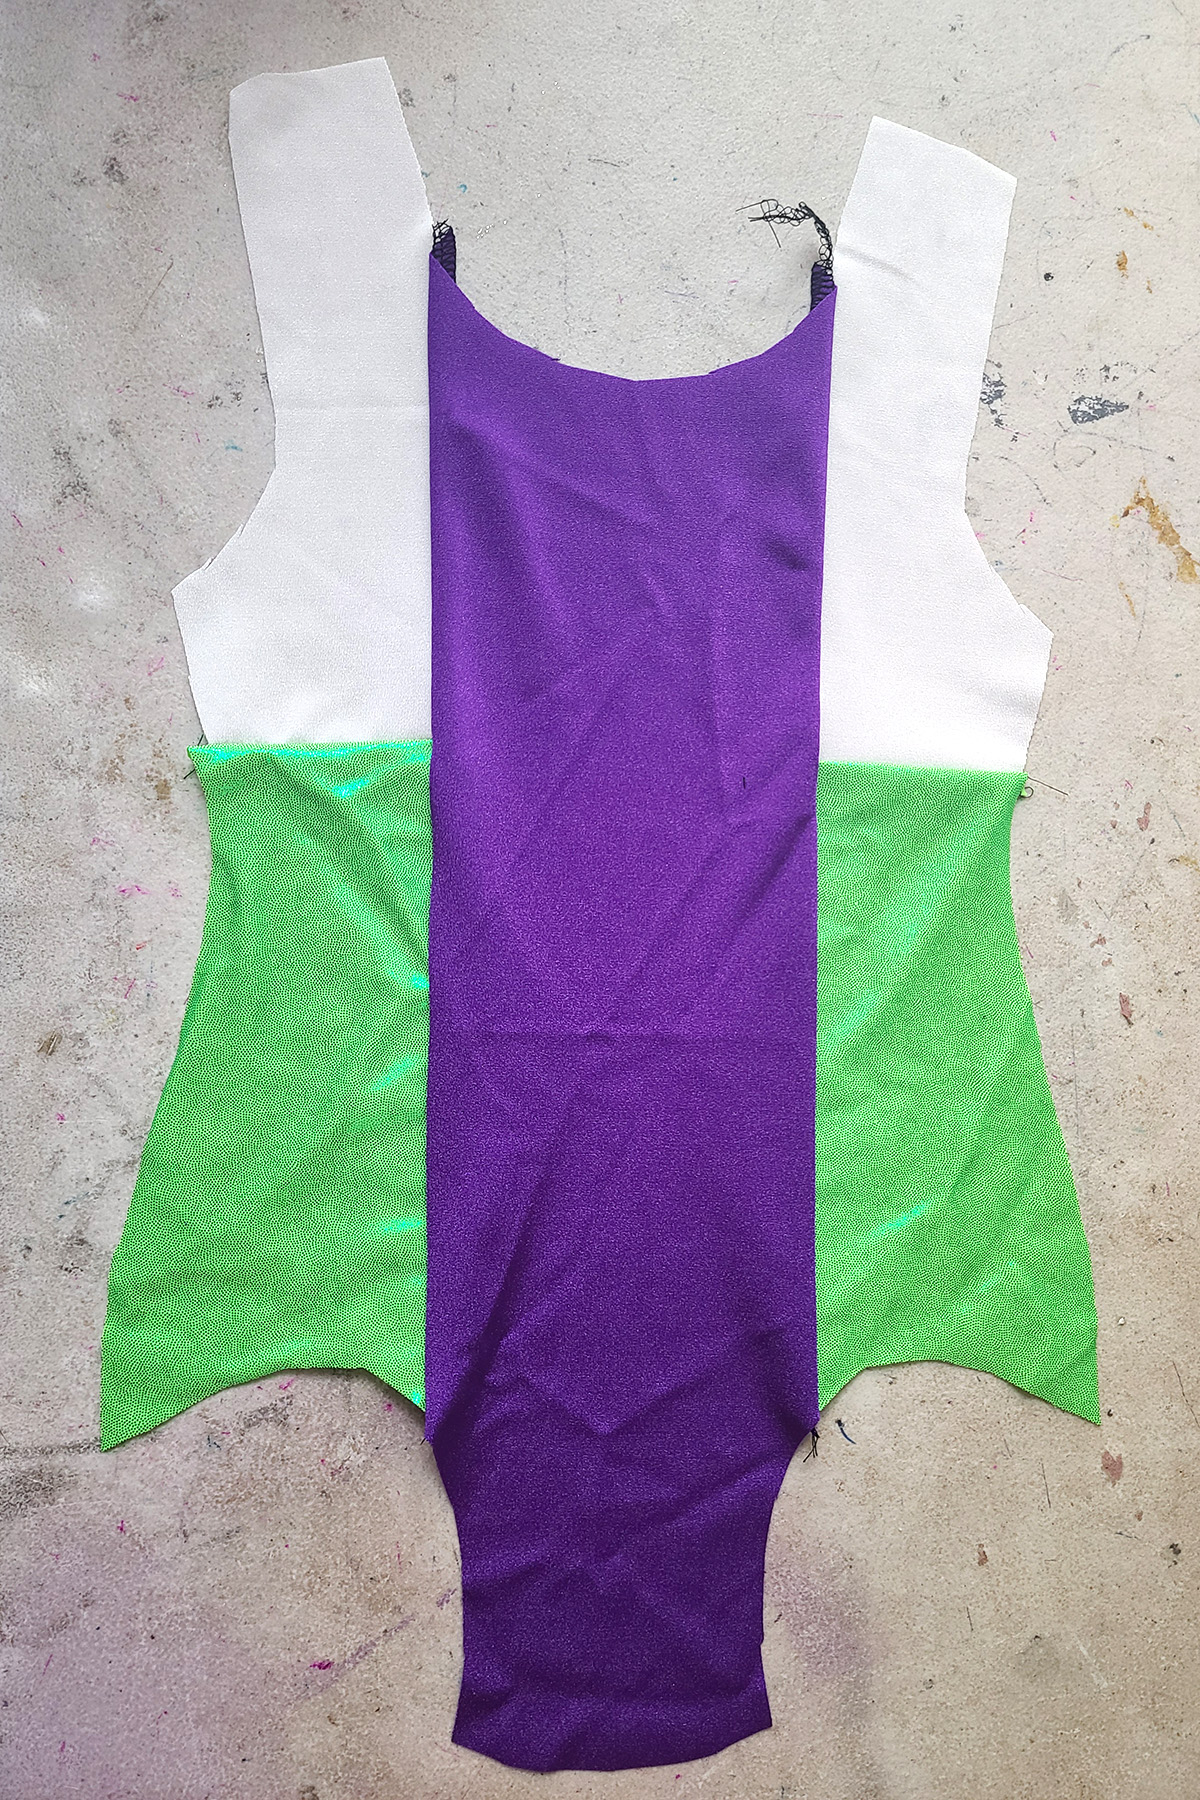 The front of the colour blocked leotard - purple in the middle, with white and green sections to either side.